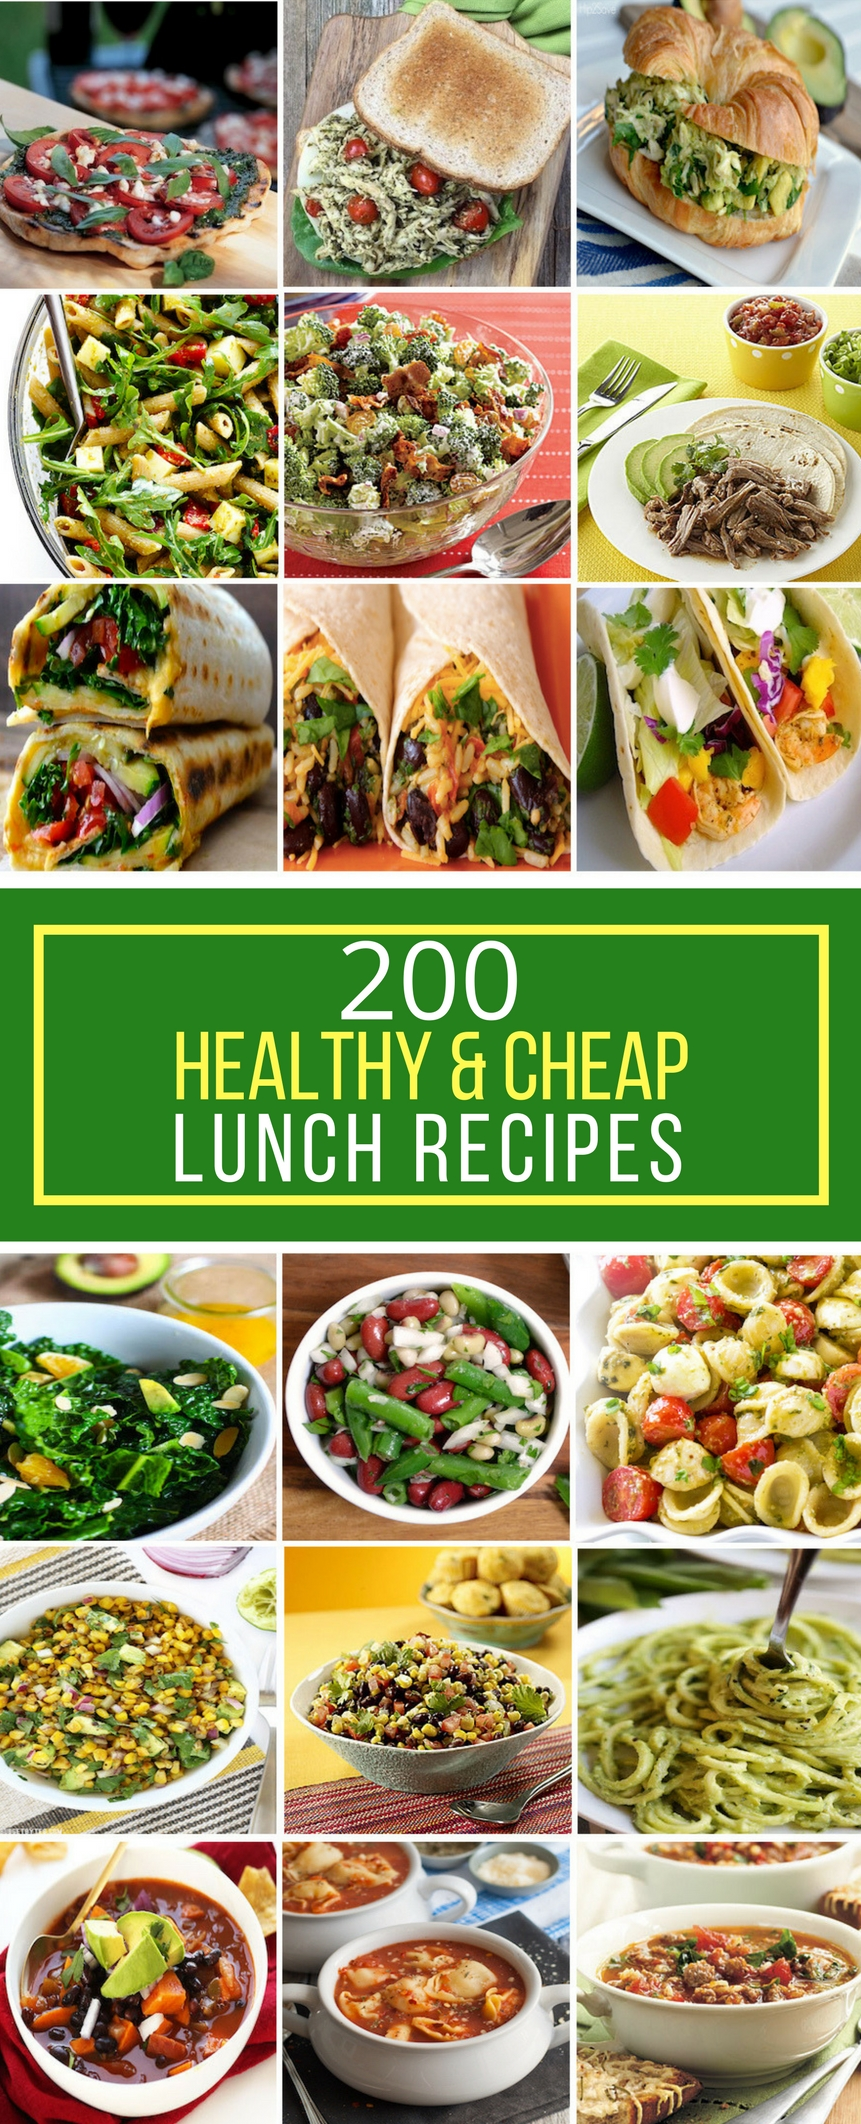 10 Amazing Healthy Meal Ideas On A Budget 120 healthy and cheap dinner recipes prudent penny pincher 2 2020